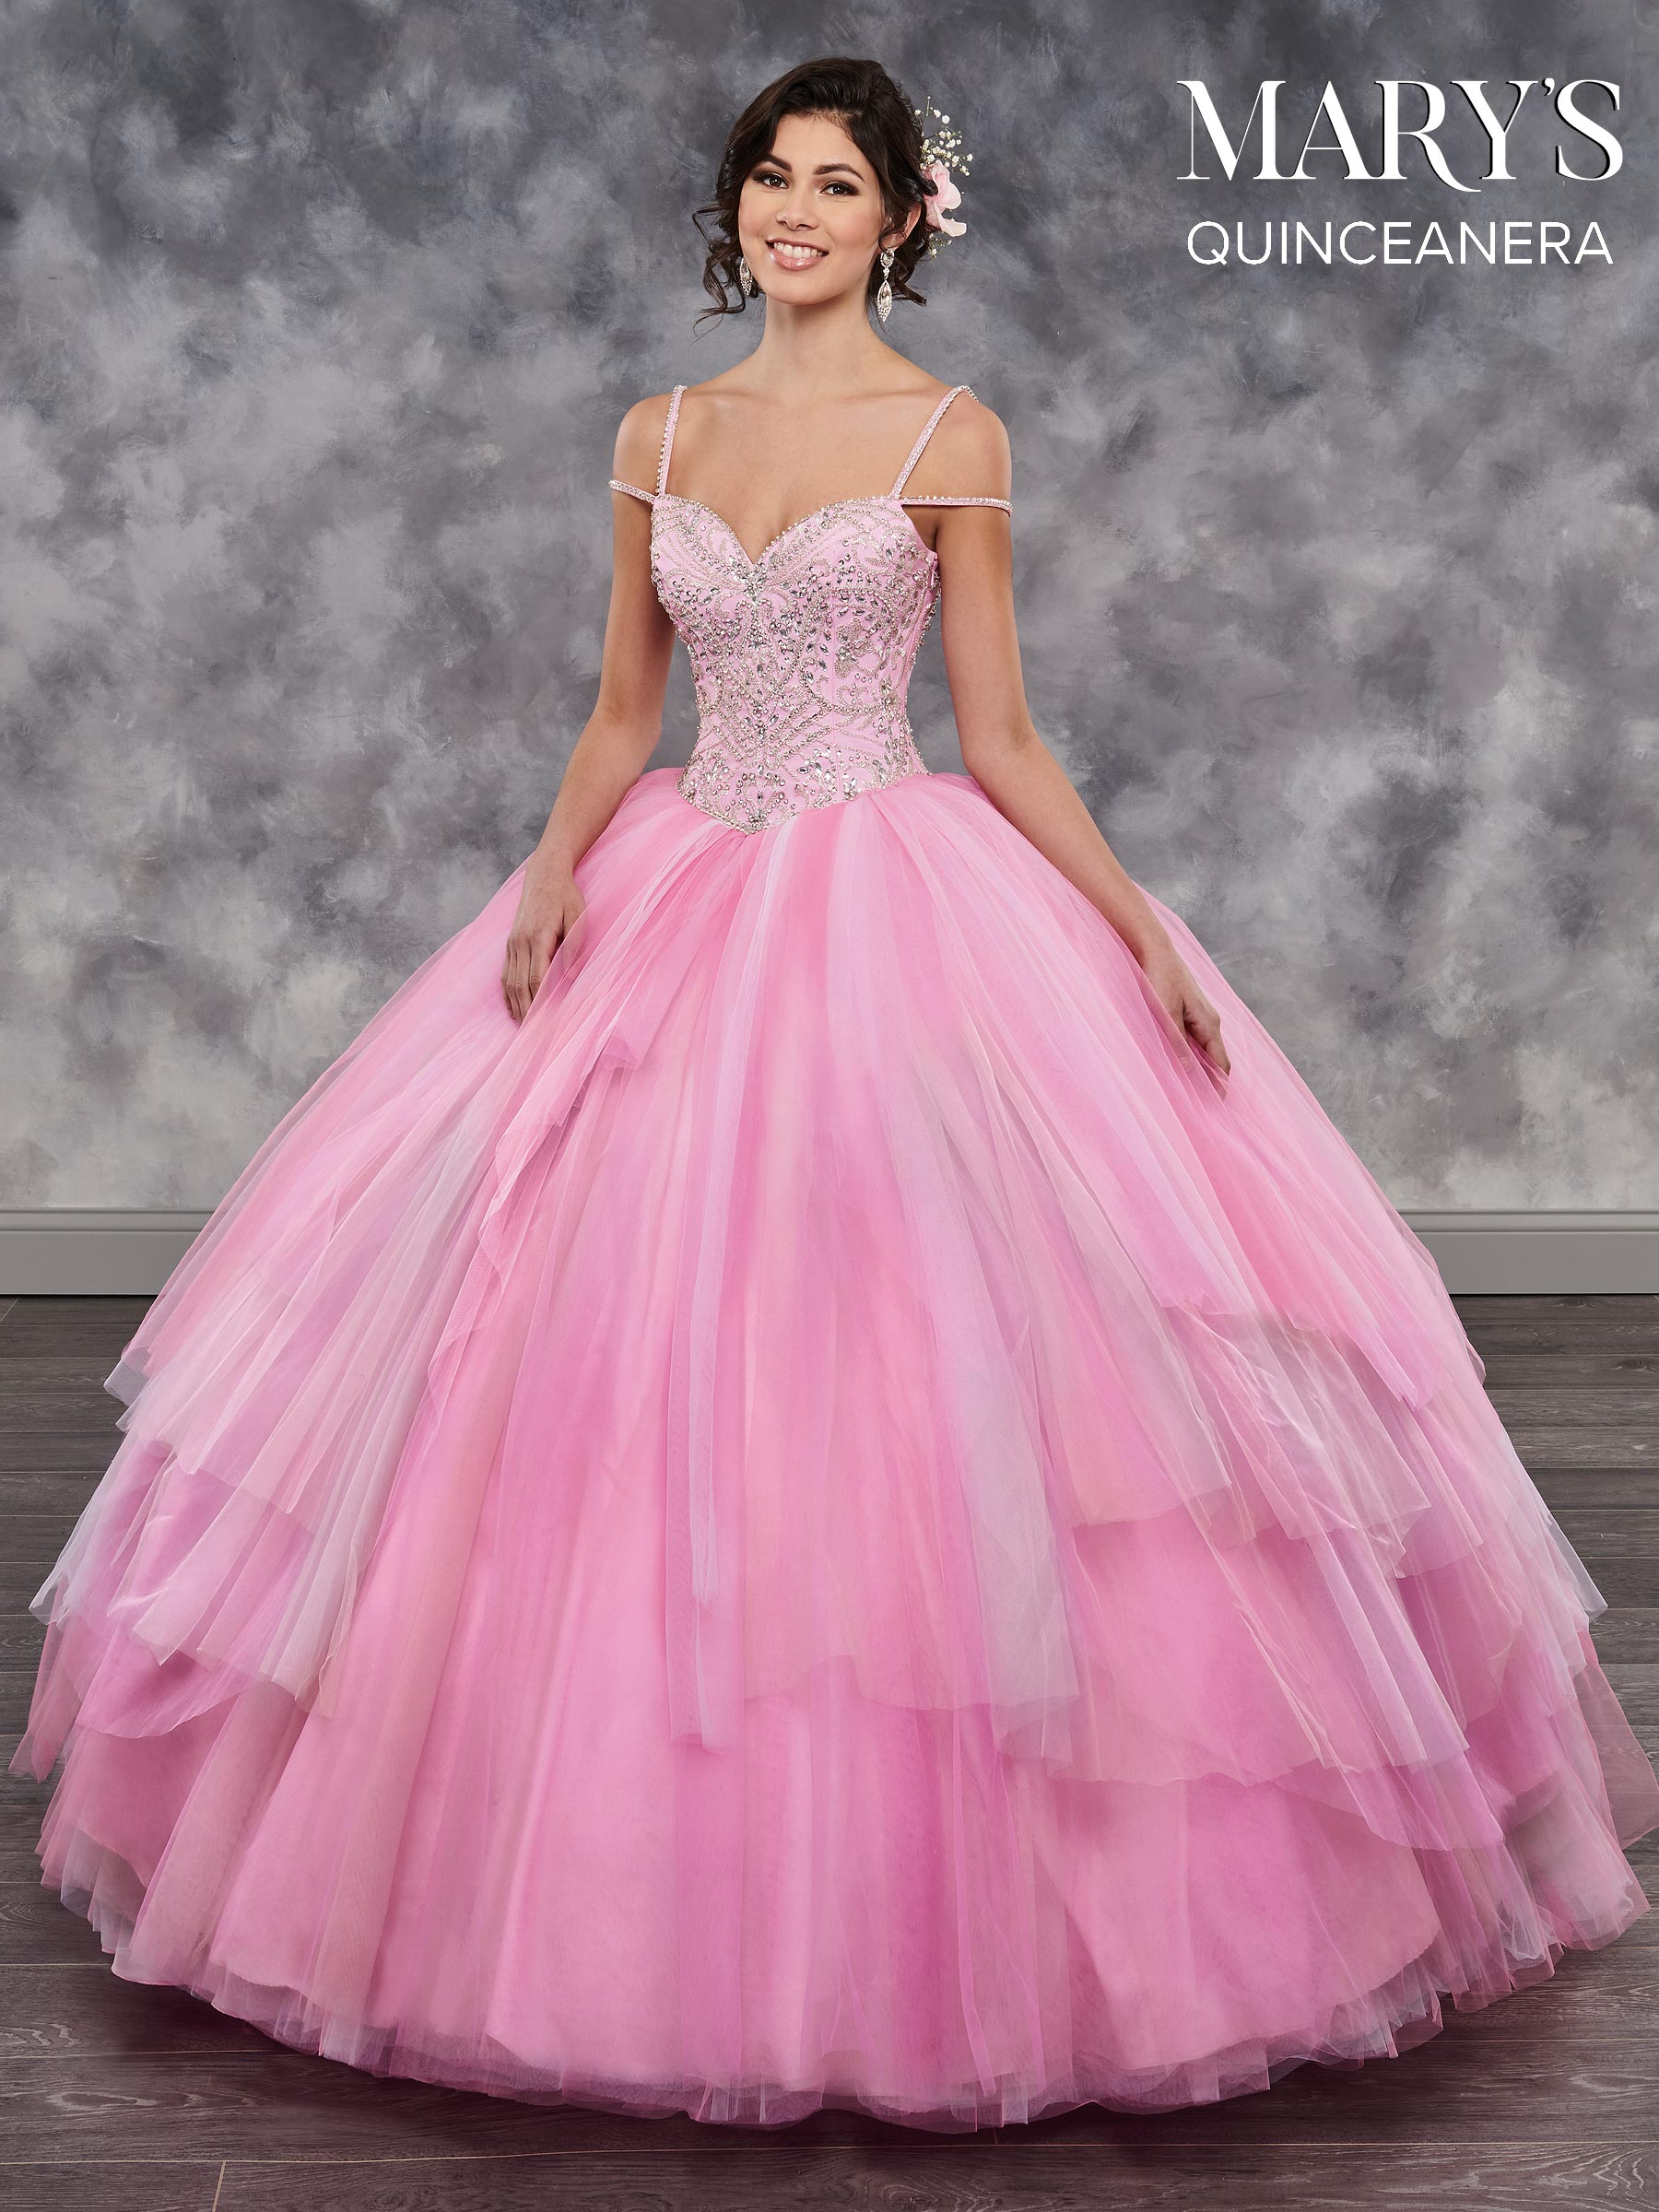 Marys Quinceanera Dresses | Mary's Quinceanera | Style - MQ2038